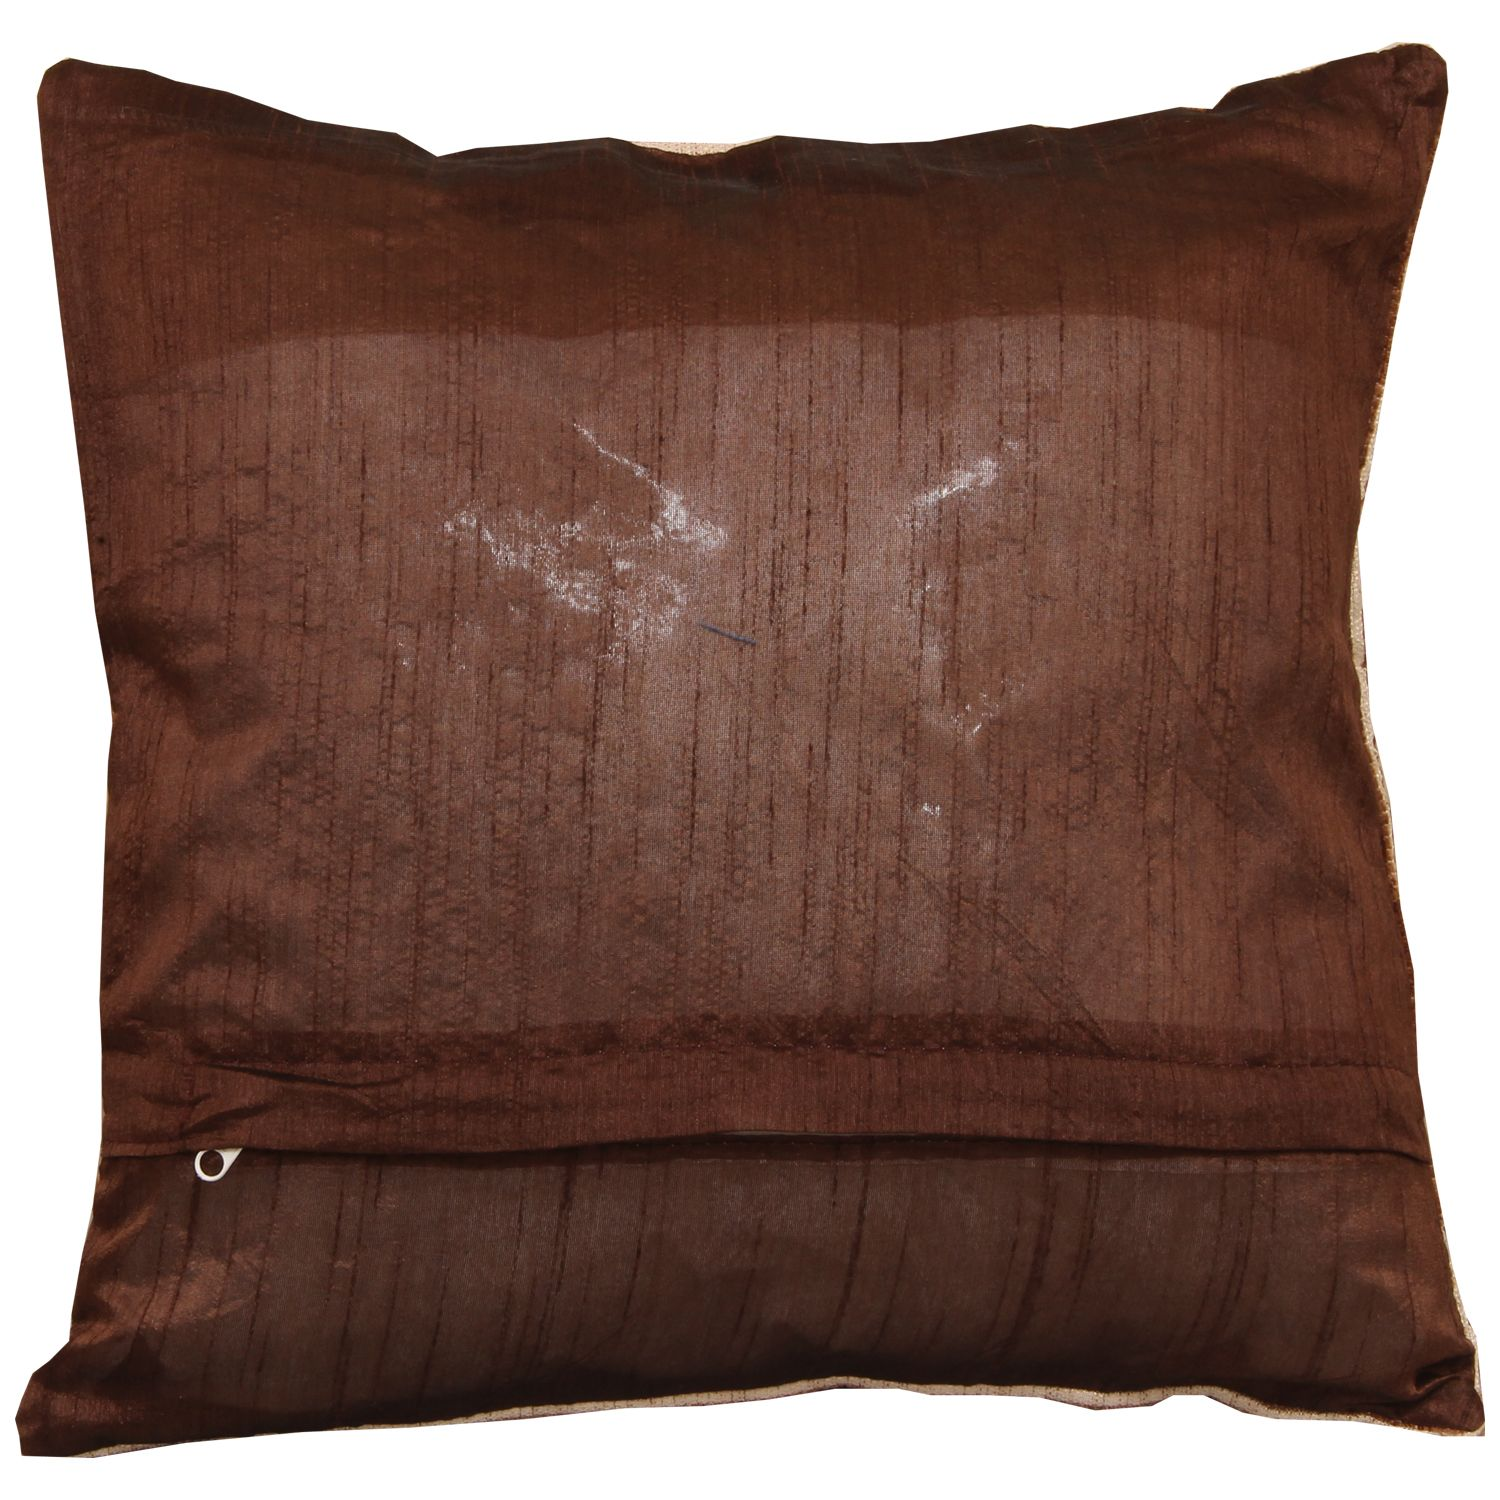 Kuber Industries Velvet 5 Pieces Cushion Cover (Brown)